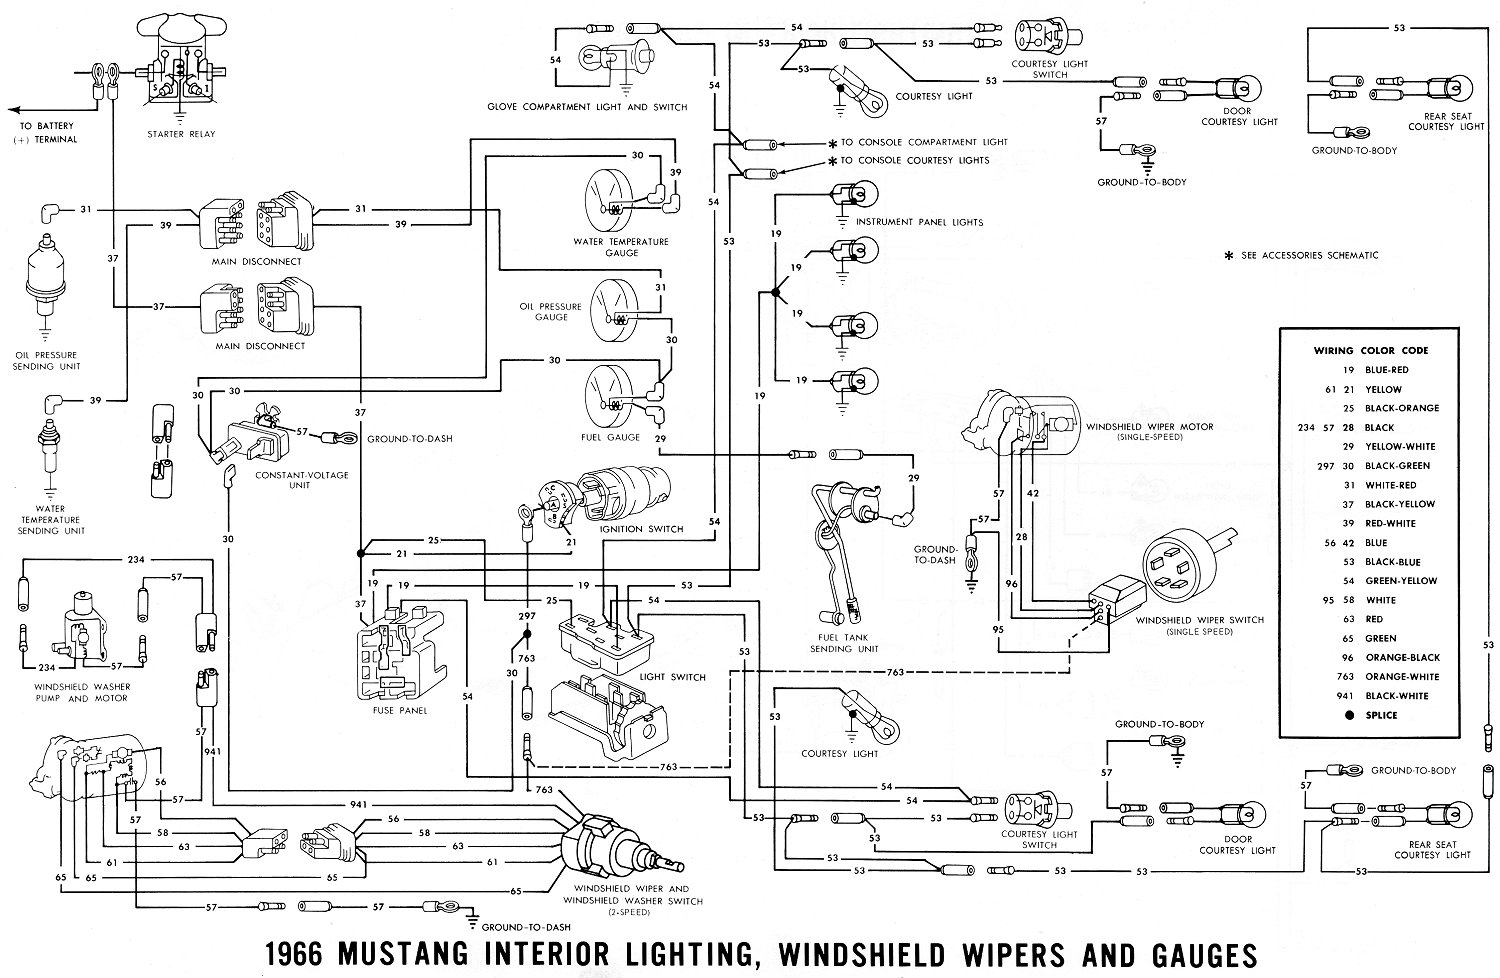 1967 Mustang Wiring Diagram Free - Wiring Diagram Name - 1967 Mustang Wiring Diagram